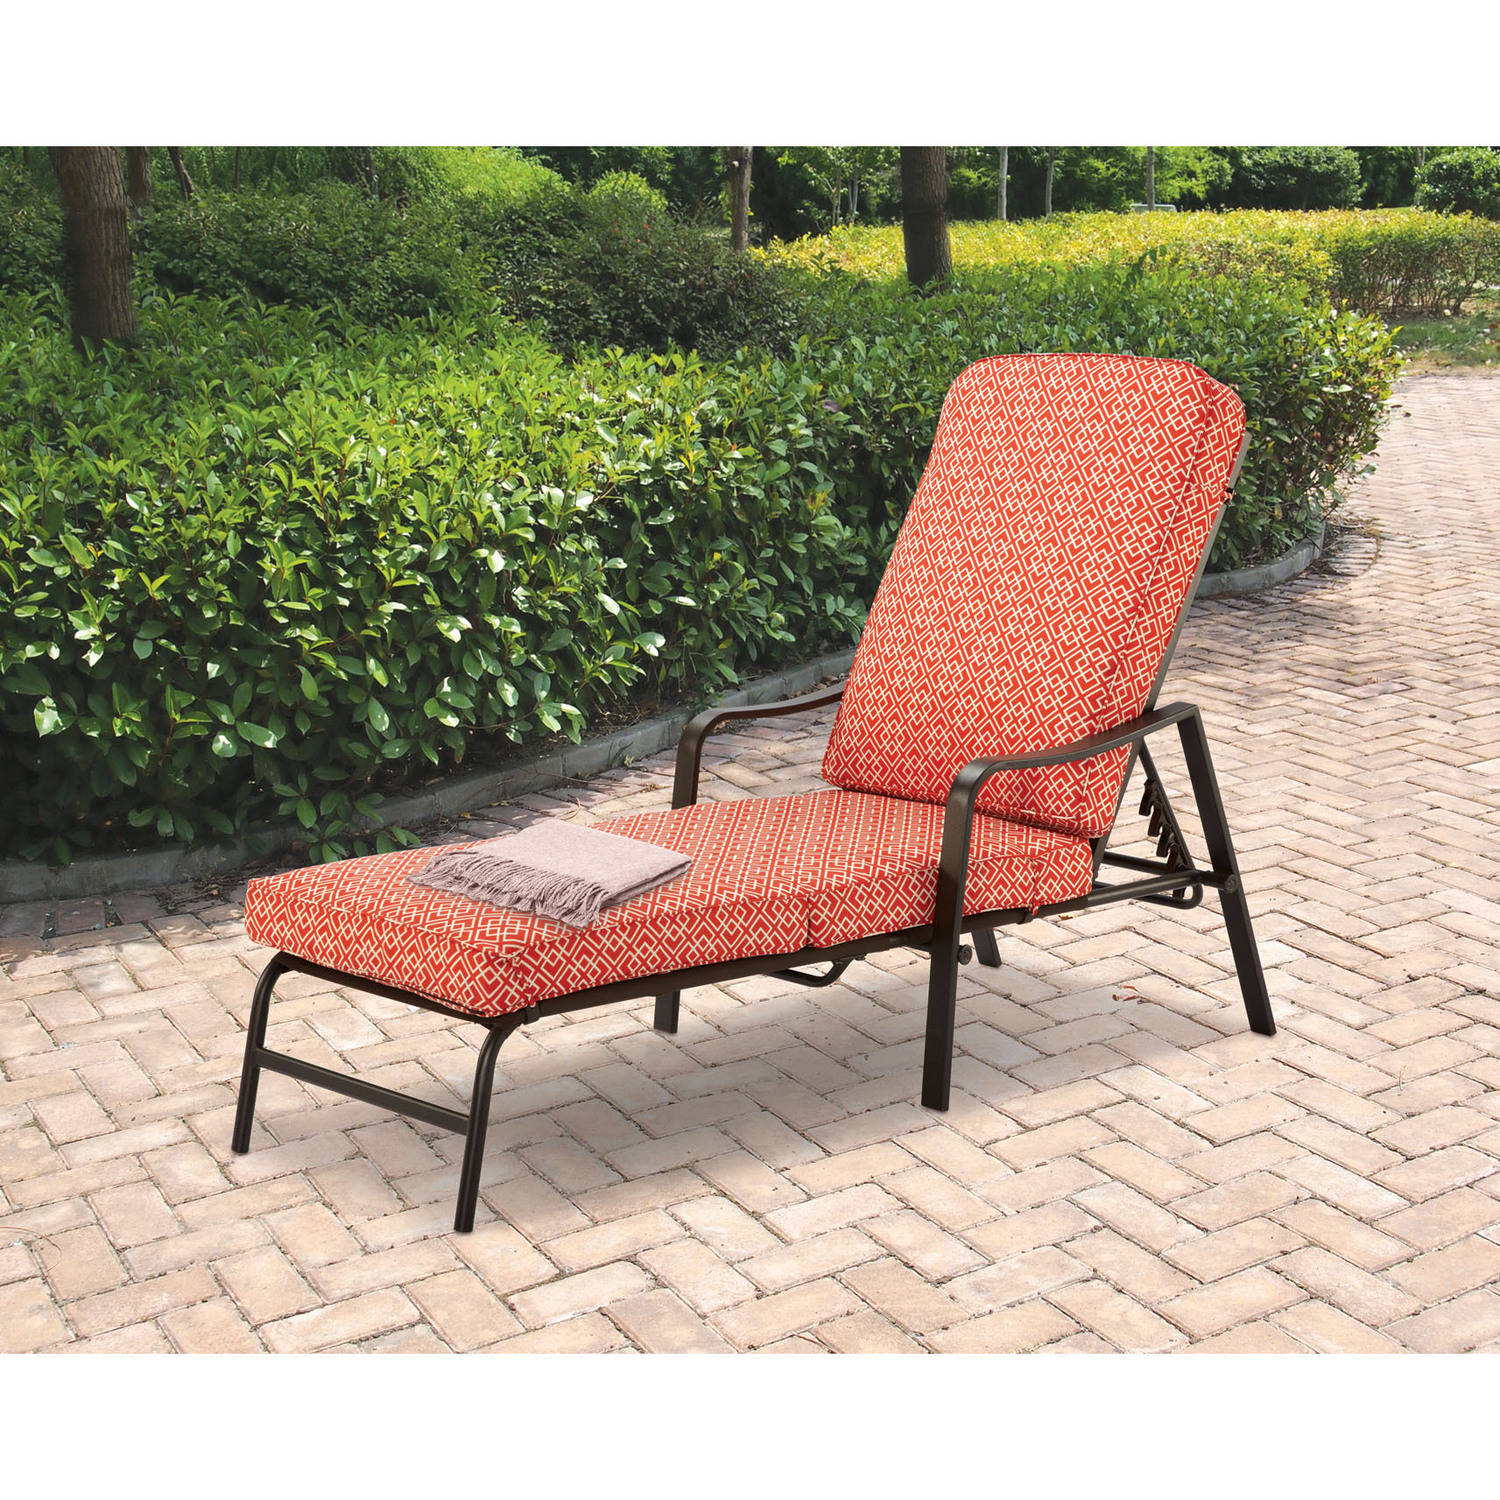 Details About Chaise Lounge Chair Patio Outdoor Furniture Cushion Adjule Garden Pool Yard